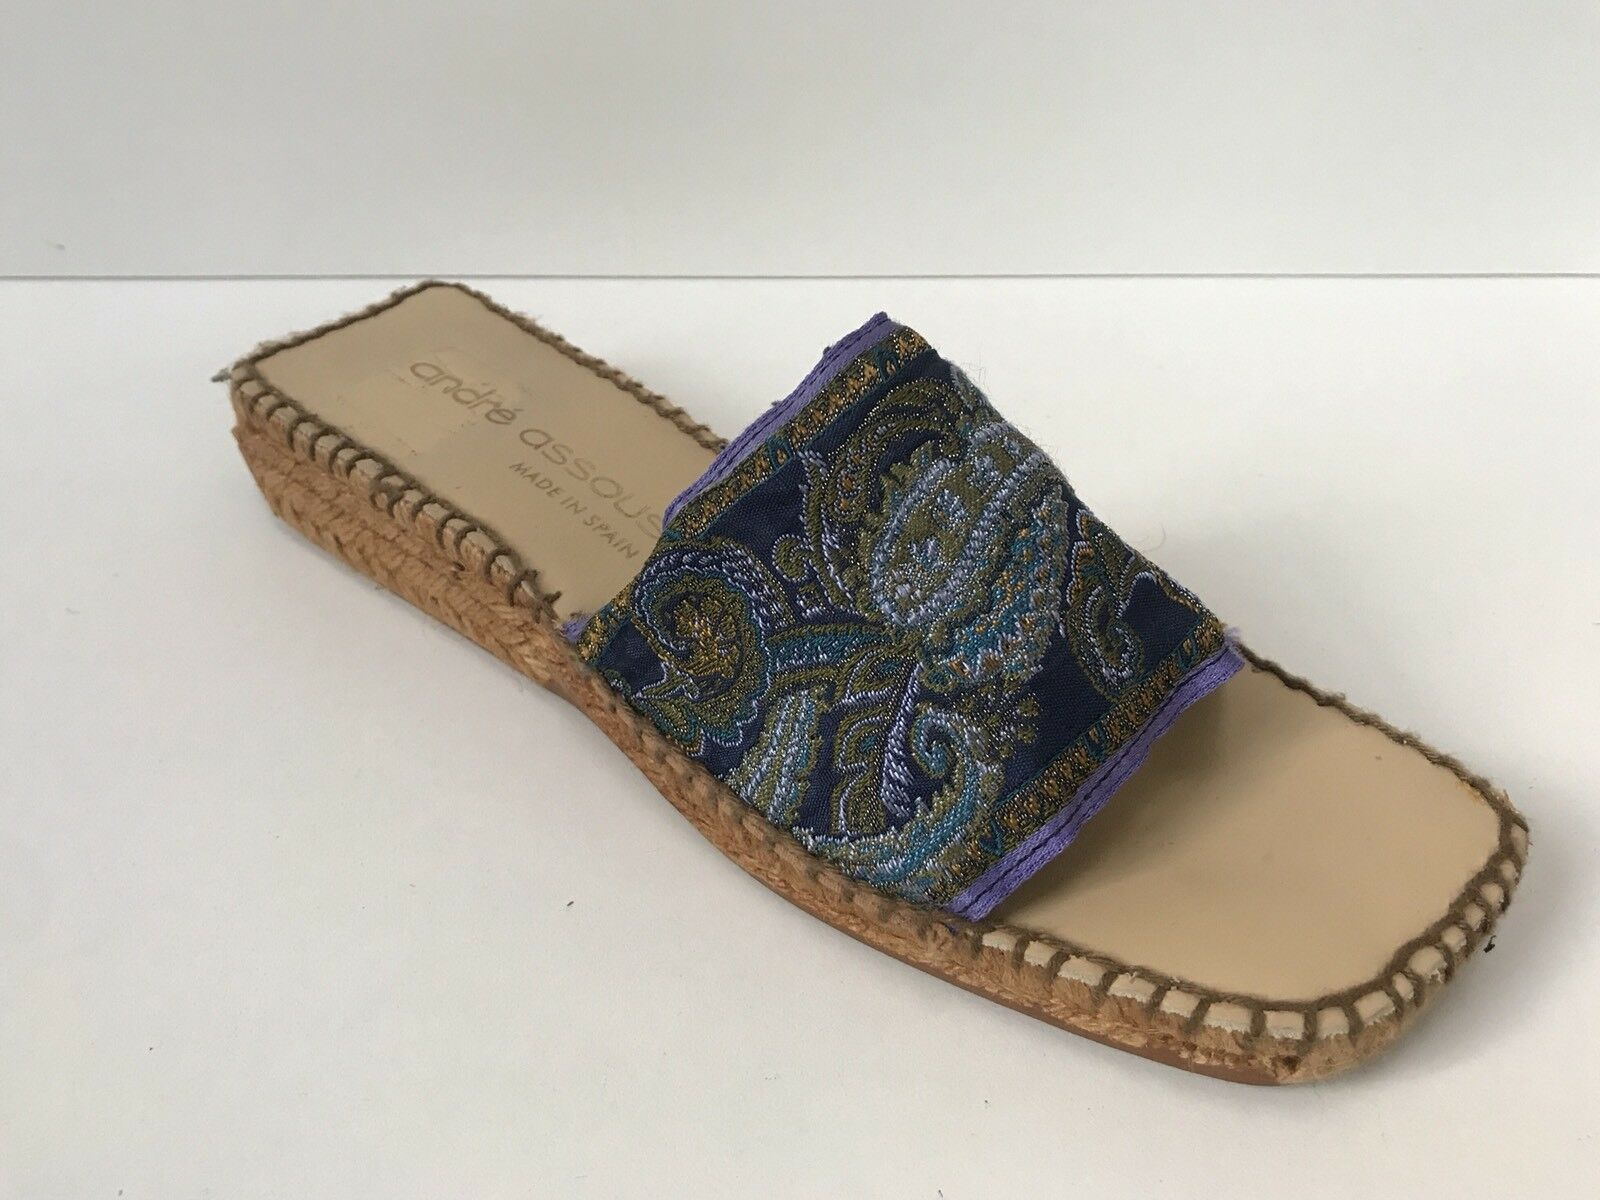 Andre Assous Sz 10 Paisley Fabric In Navy & violet Slip On Espadrille Sandal